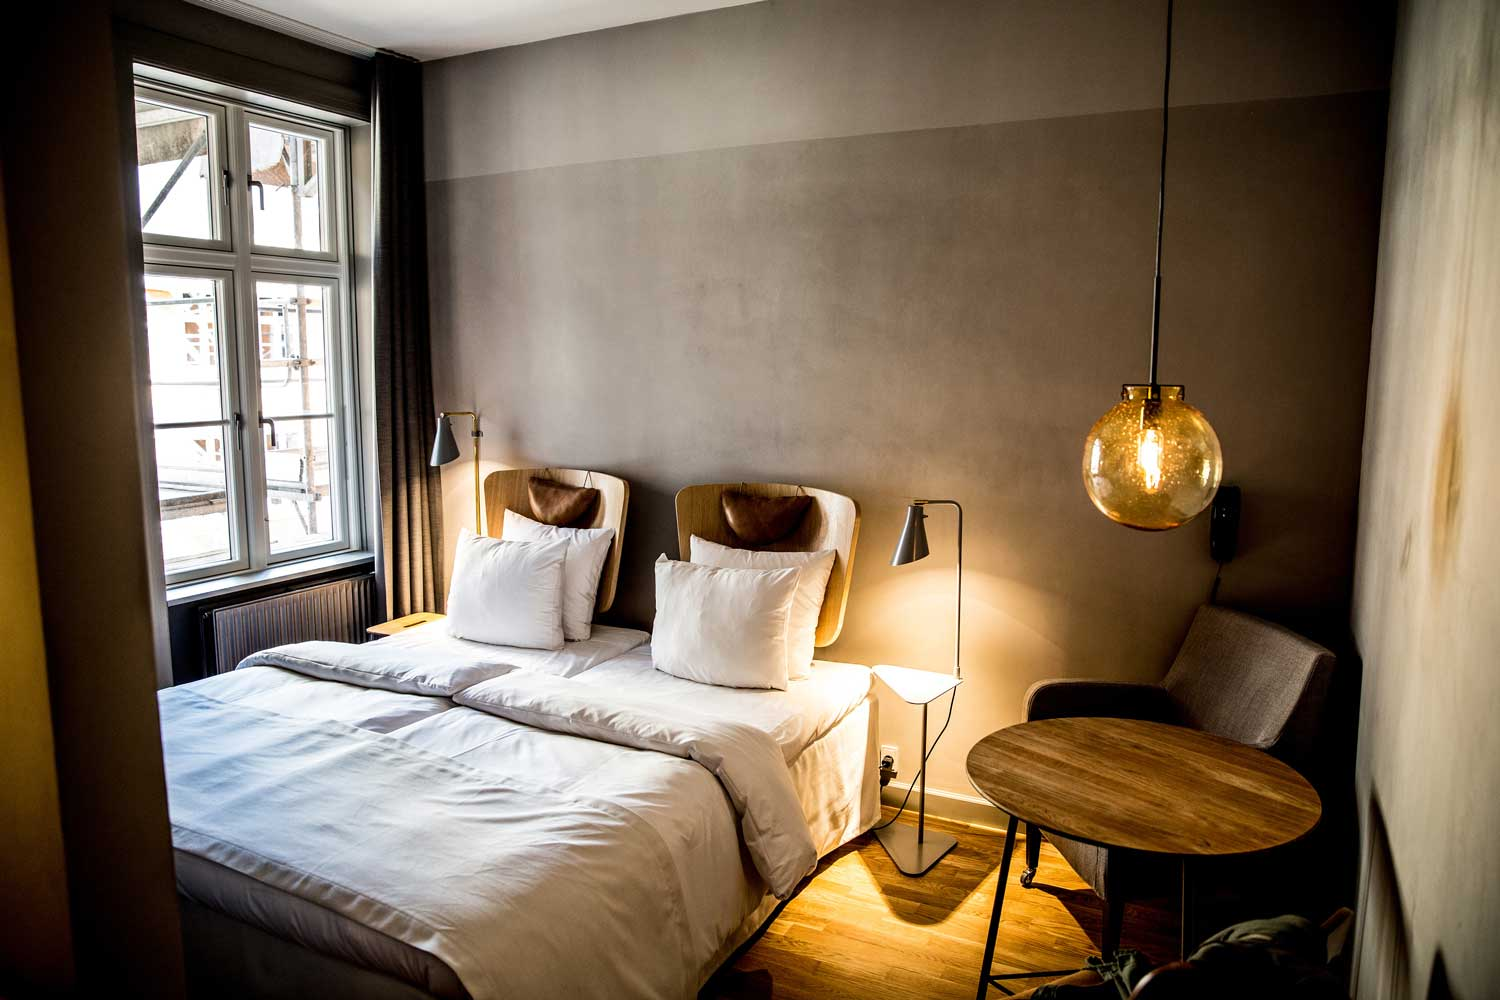 Hotel sp34 copenhagen denmark yellowtrace for The designers hotel